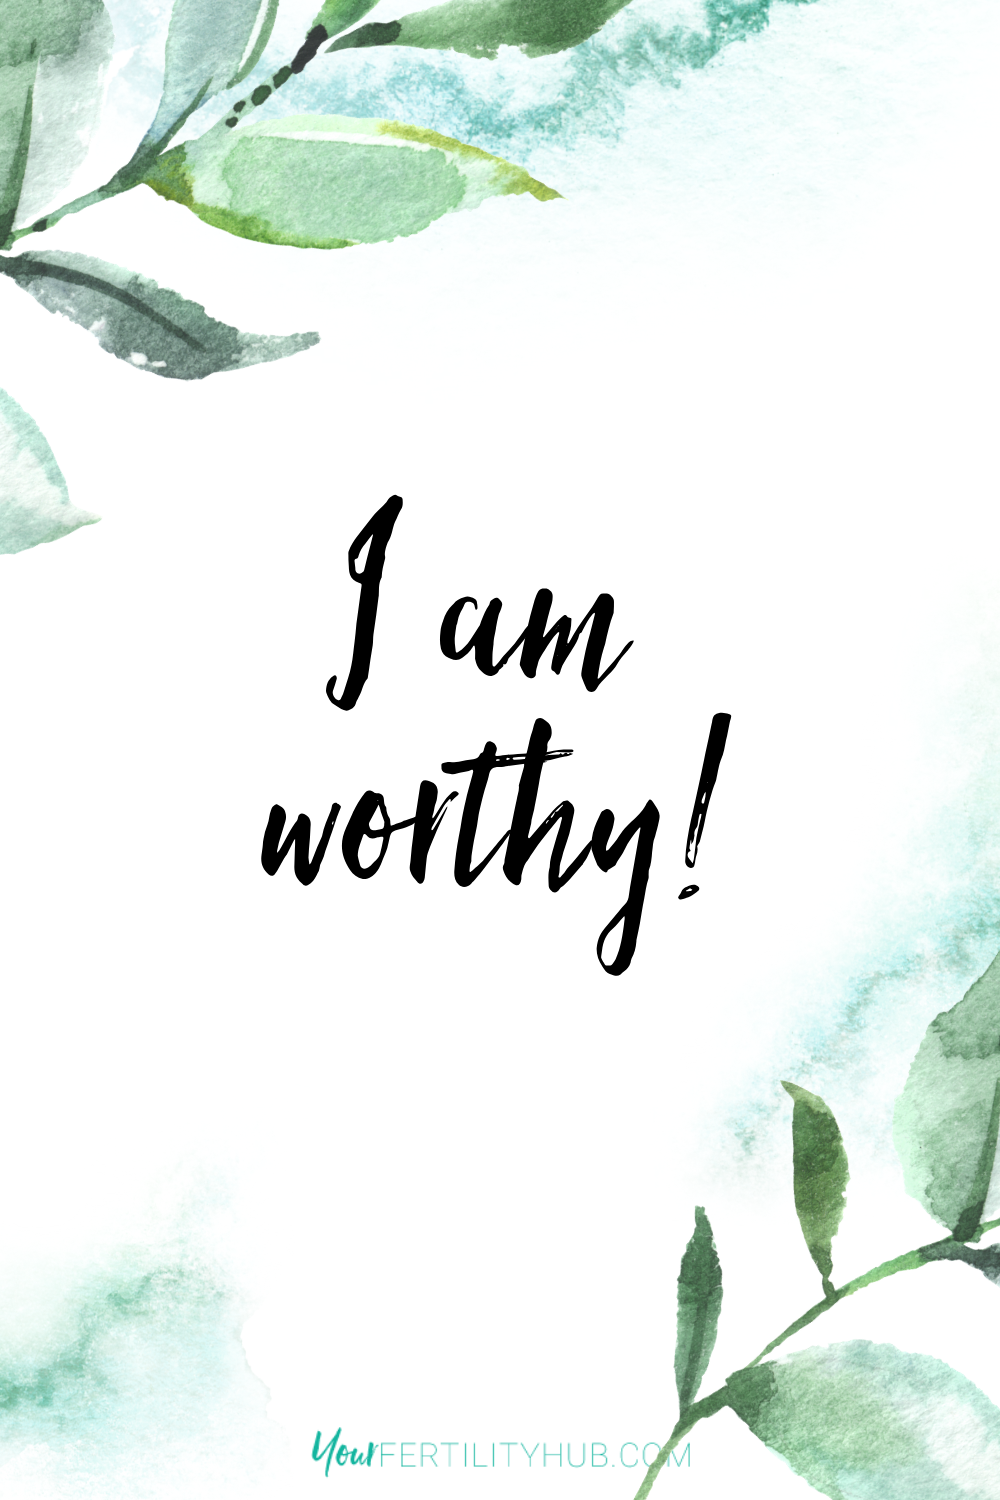 Banish those negative thoughts during infertility with this amazing affirmation. Learn how to challenge your mindset, feel more relaxed and stronger EVEN whilst still TTC. Introducing YOUR FERTILITY TOOLBOX app: 🥰 Private community 🧘♀️ HUGE toolbox of MIND+BODY resources from me and guest experts 📆 Regular events 💡 Relaxation and mindset inspiration #fertilityjourney #ttc #infertility #fertility #fertilitytips #ivf #fertilitycoaching #fertilitycoach #fertilityaffirmations